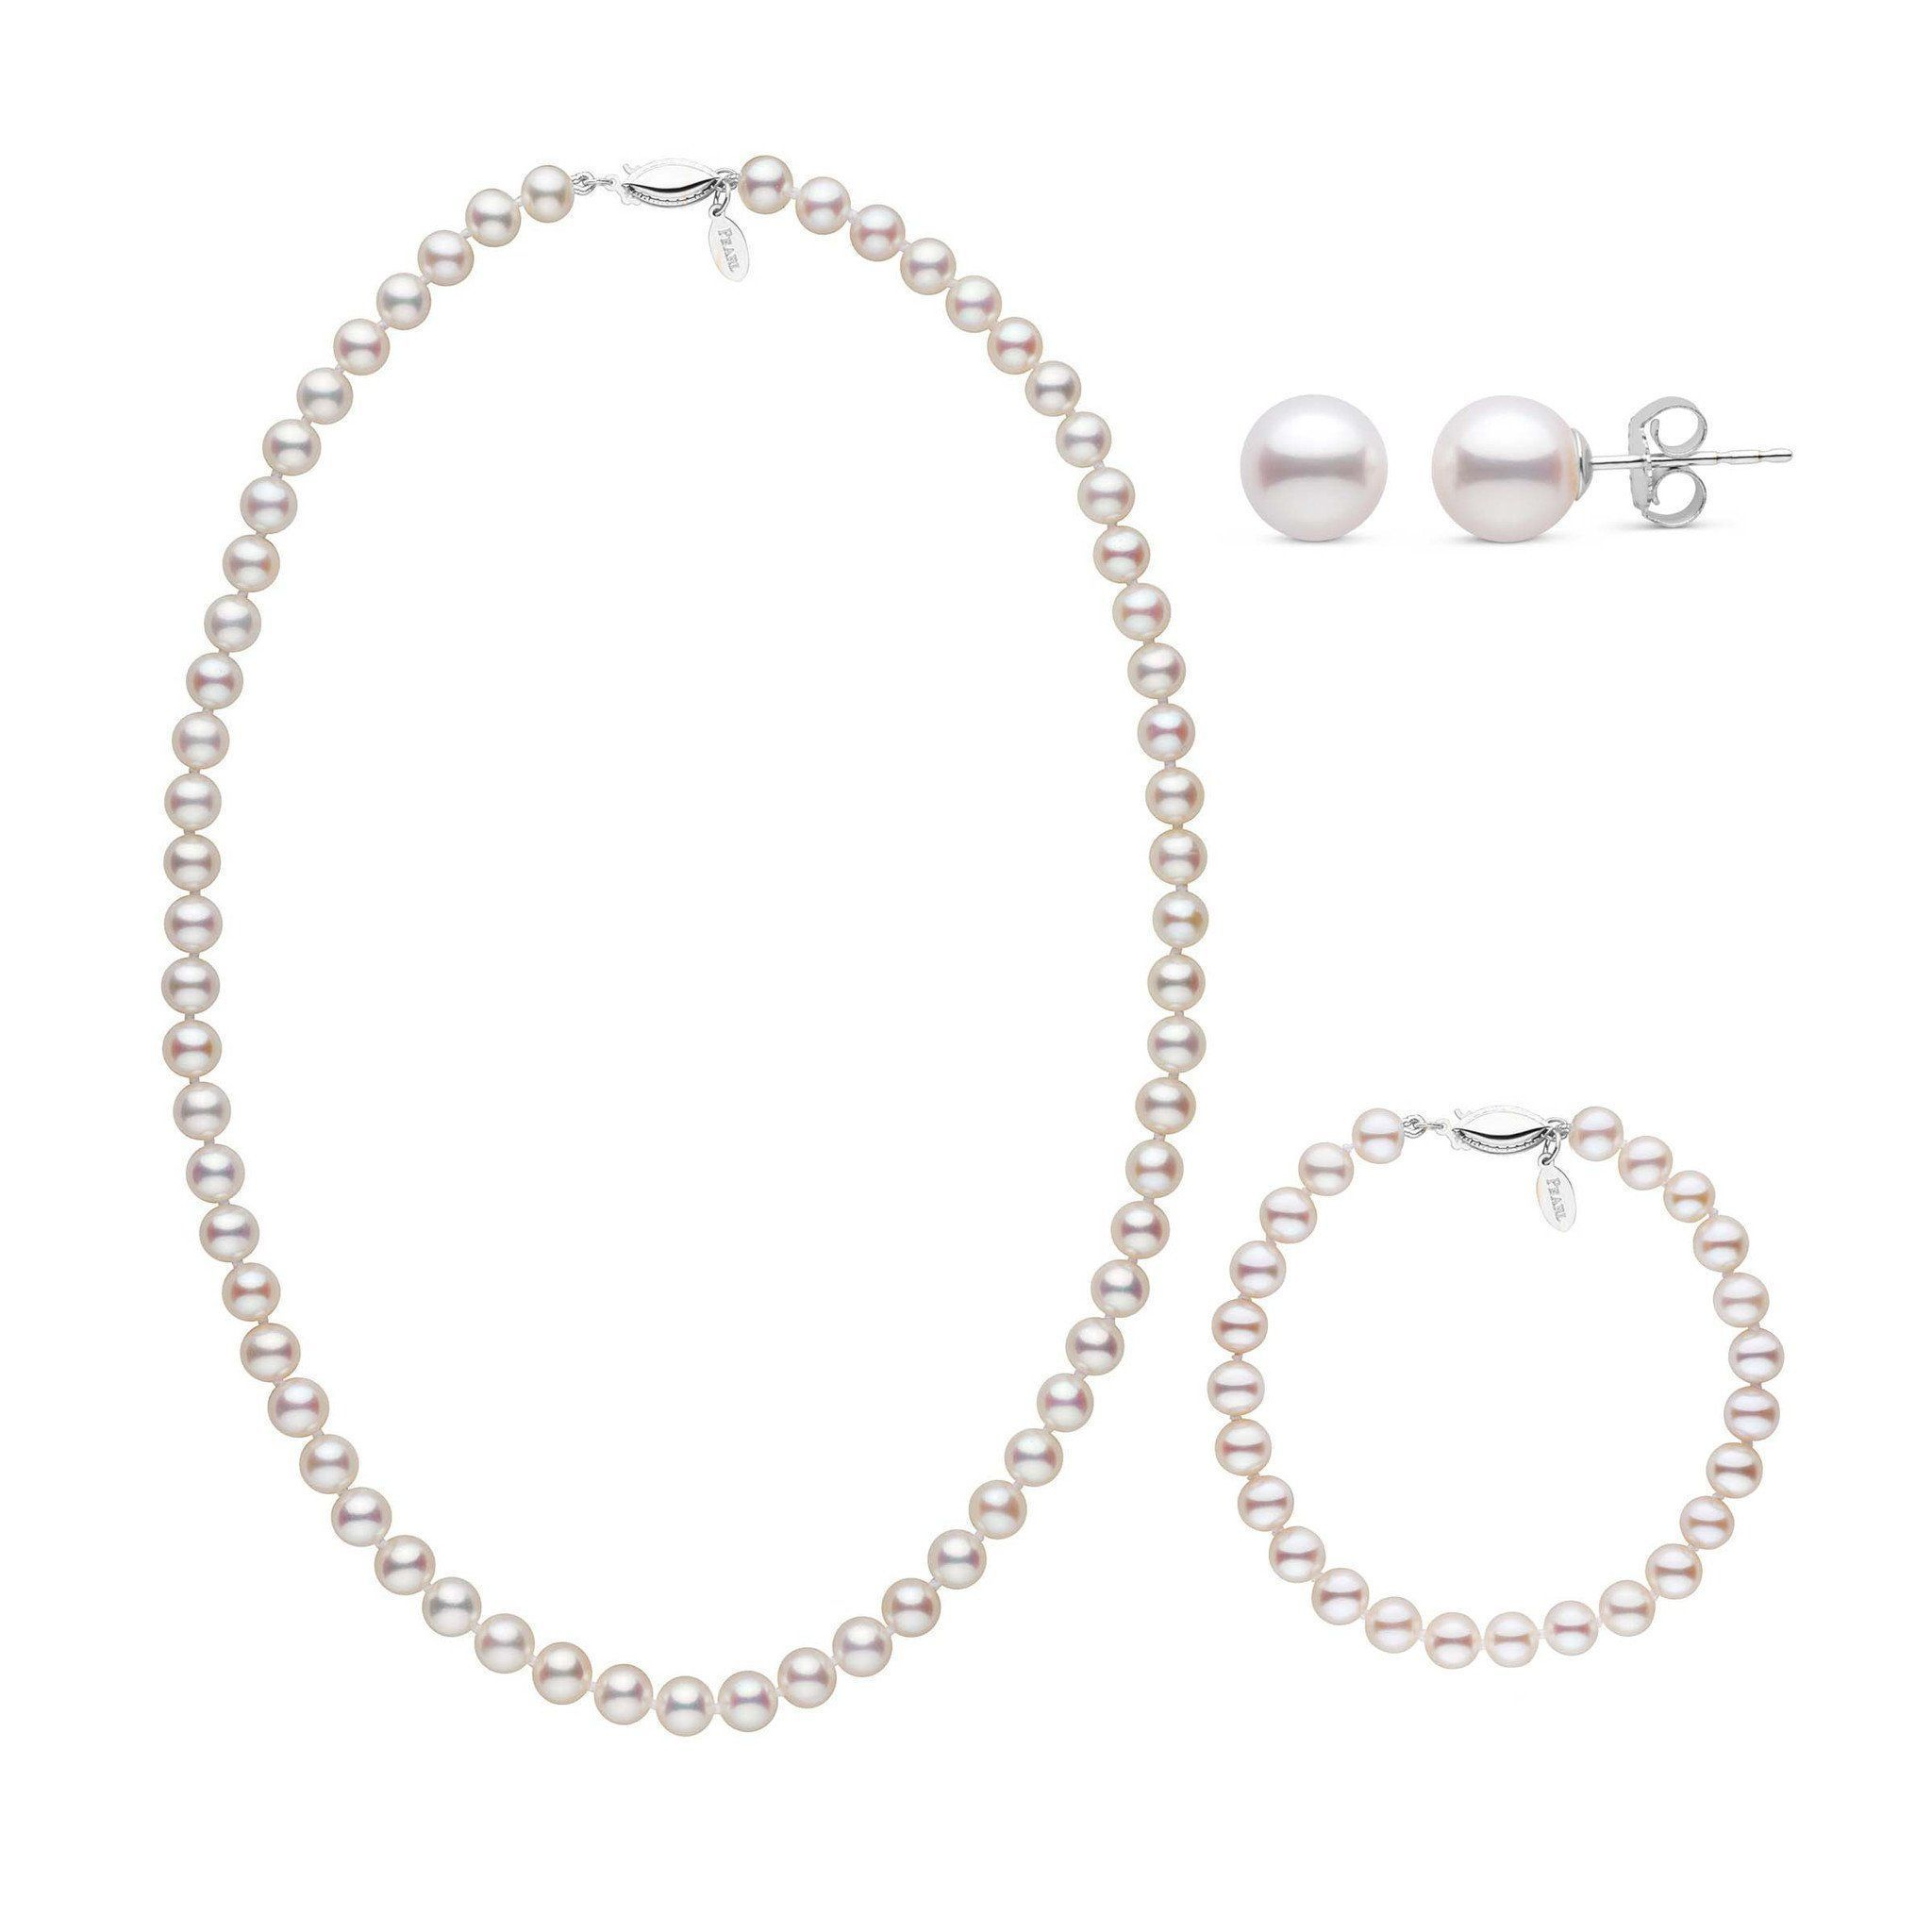 18 Inch 3 Piece 6.5-7.0 mm White Freshadama Freshwater Pearl Set